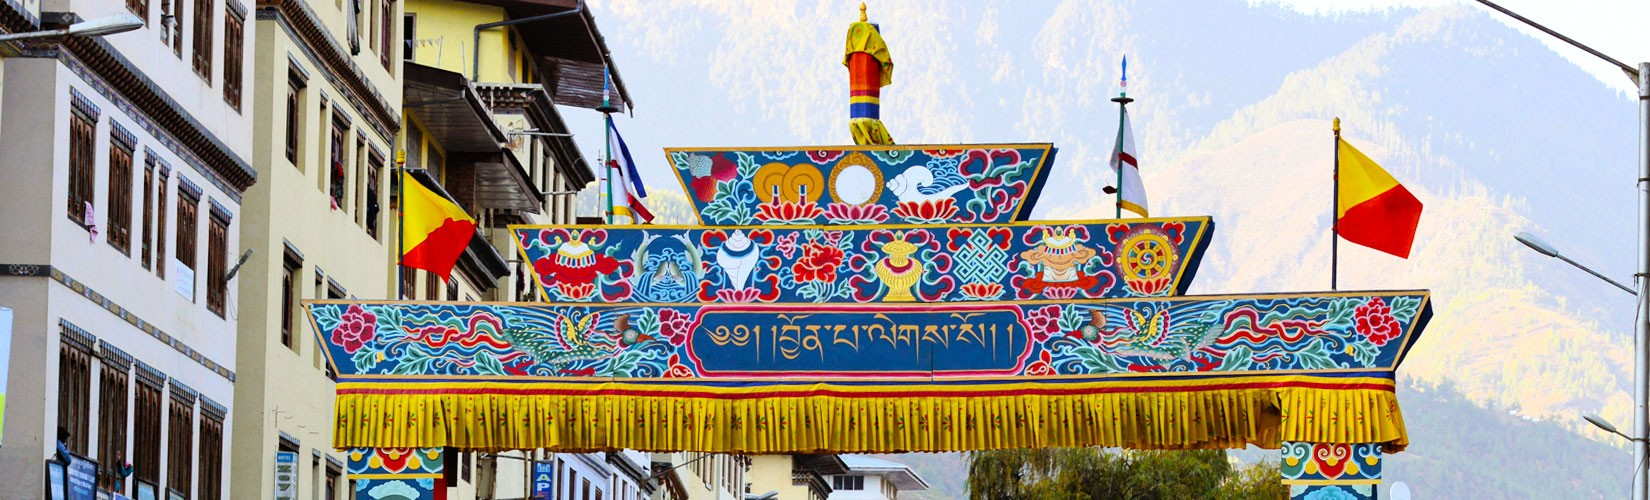 best bhutan tour,thimpu, Bhutan Tour and Packages,